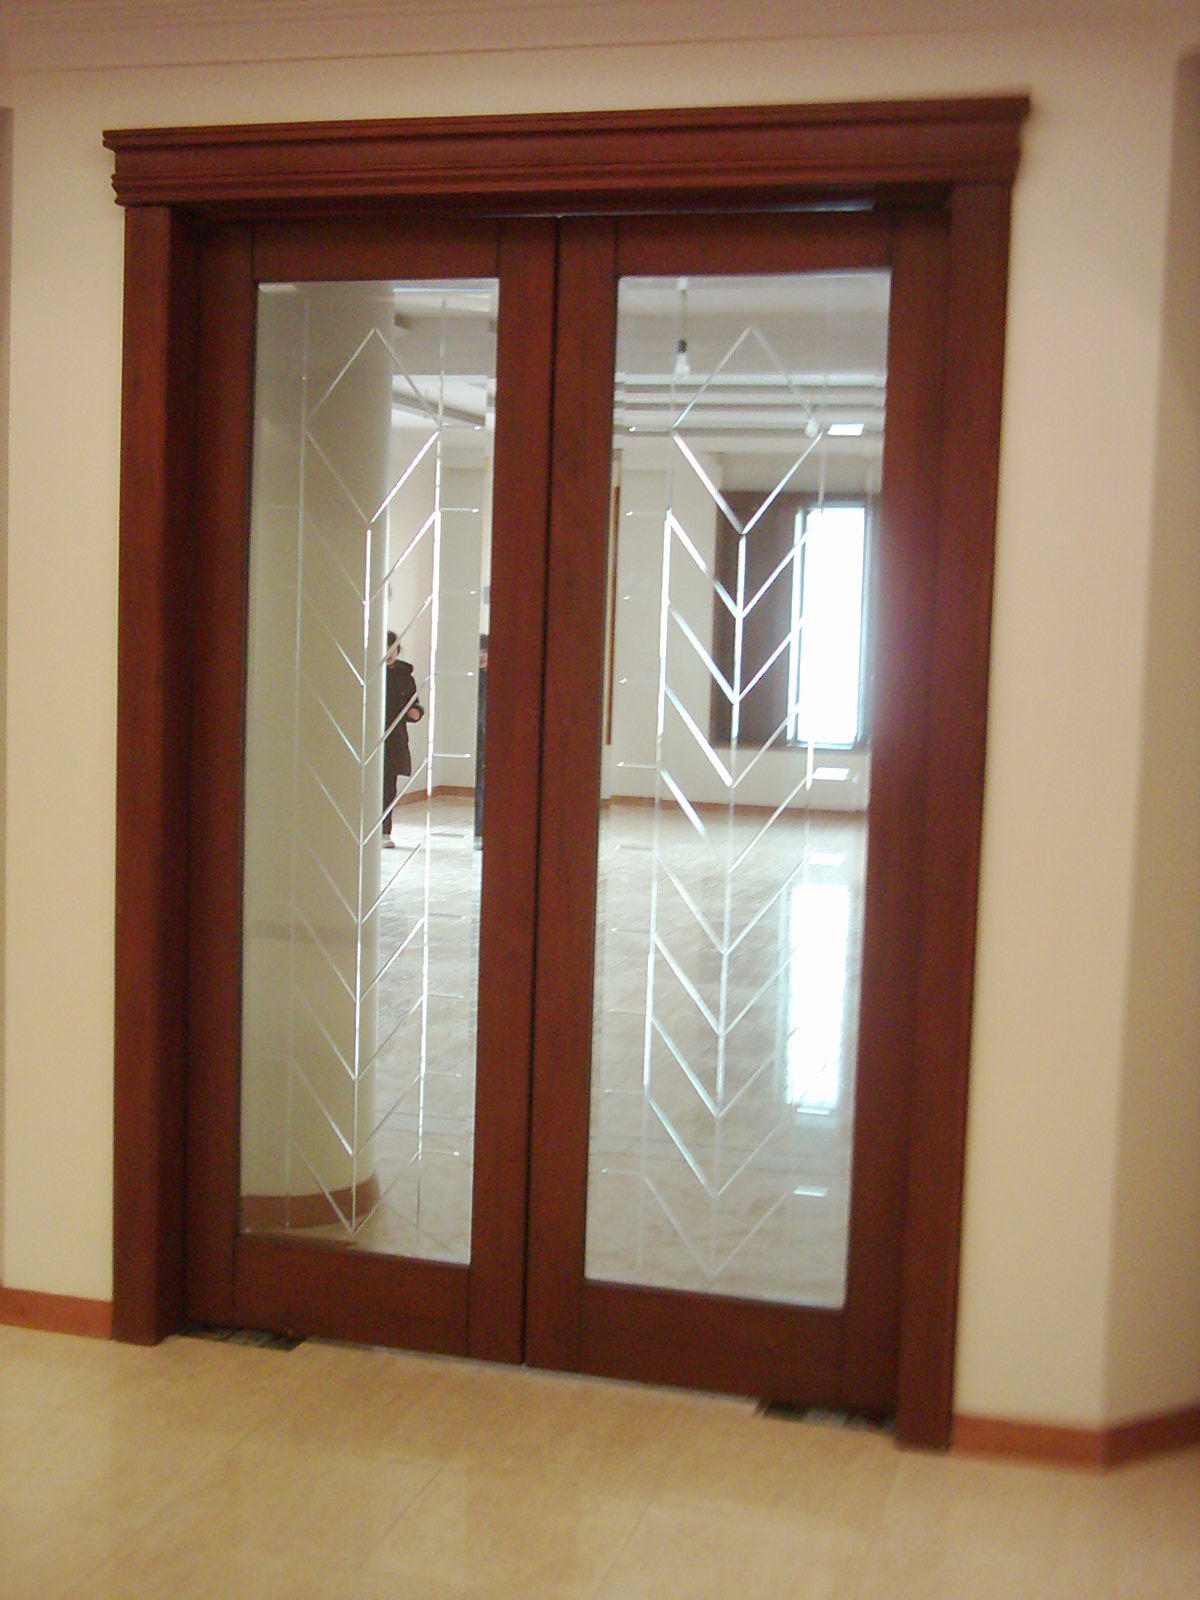 Le Meilleur Add Elegance To Your Home With French Doors Interior 36 Ce Mois Ci